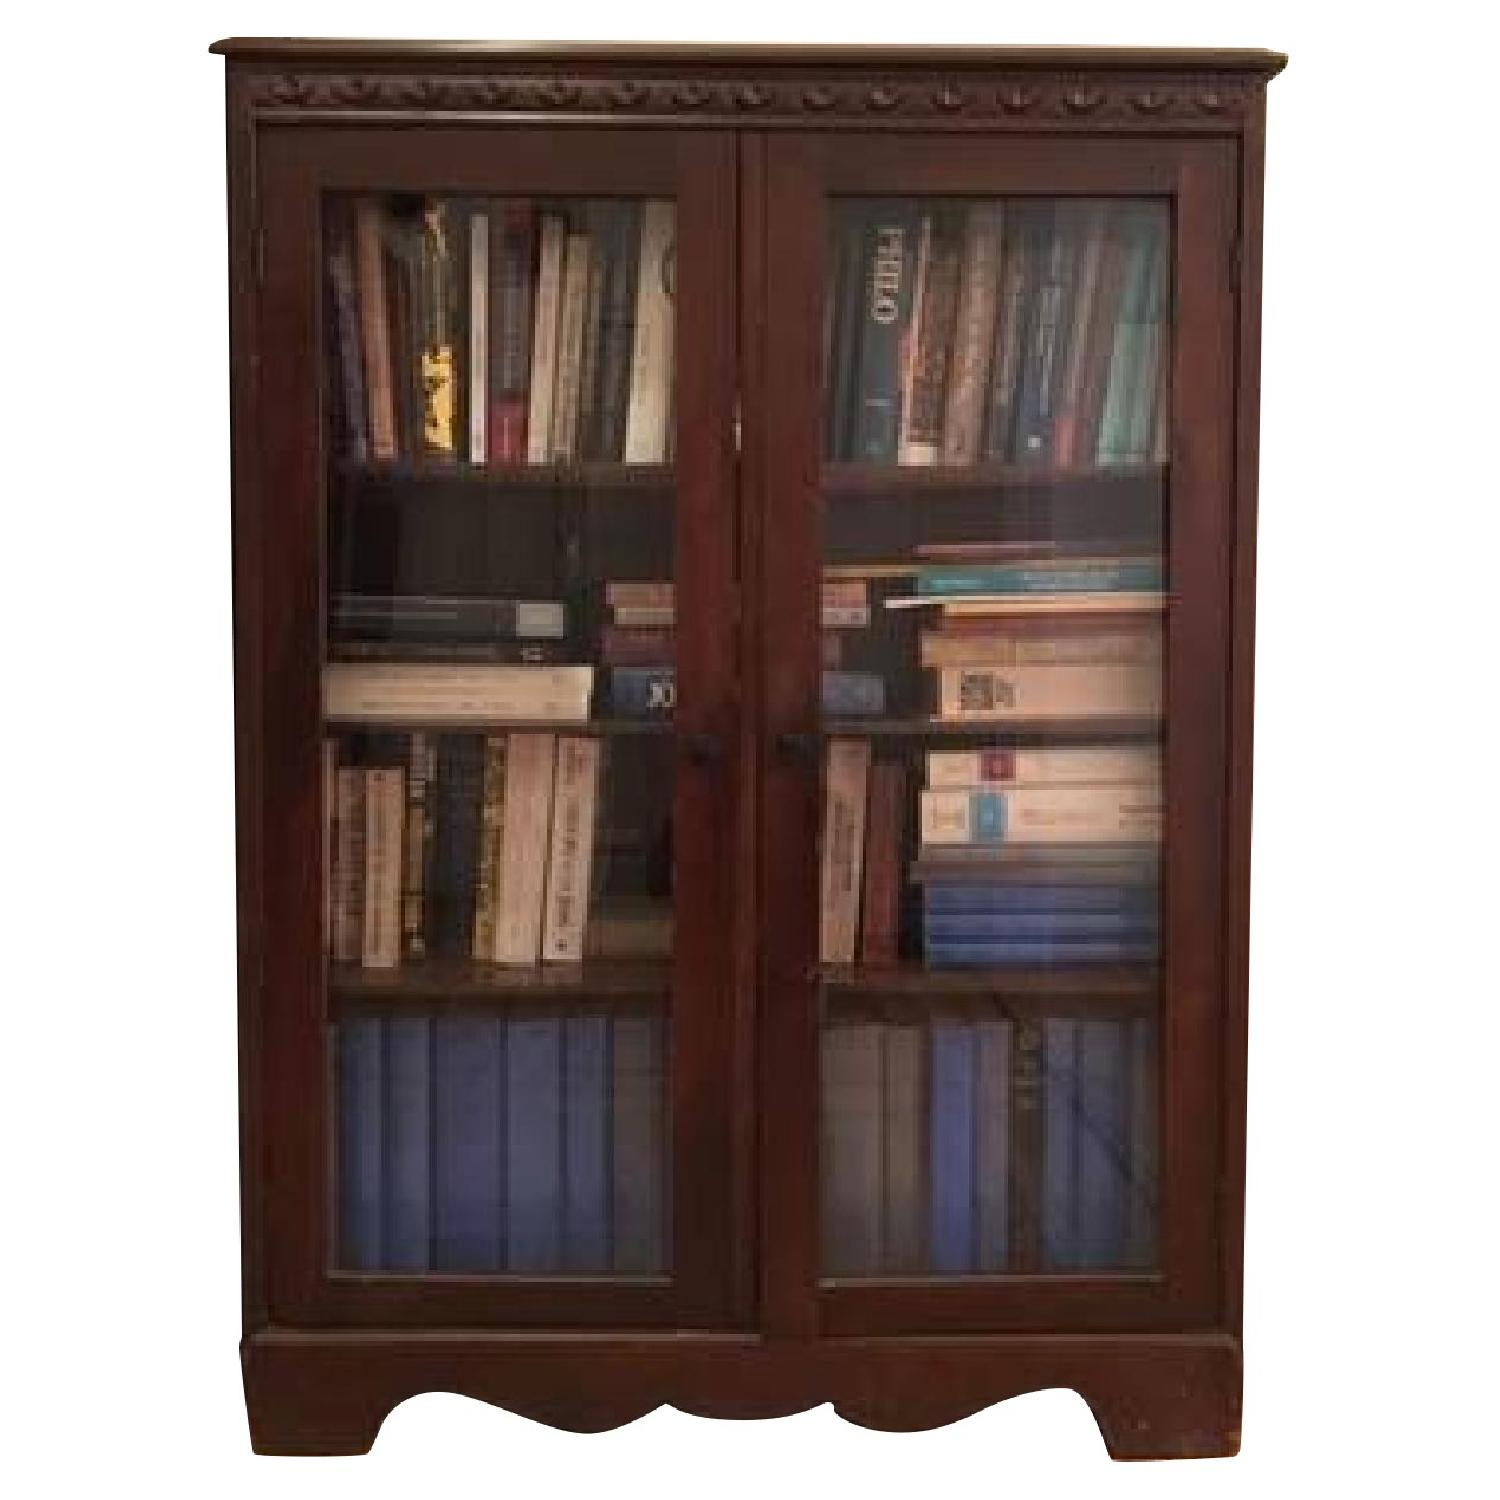 Vintage Mahogany Bookcase w/ Glass Doors